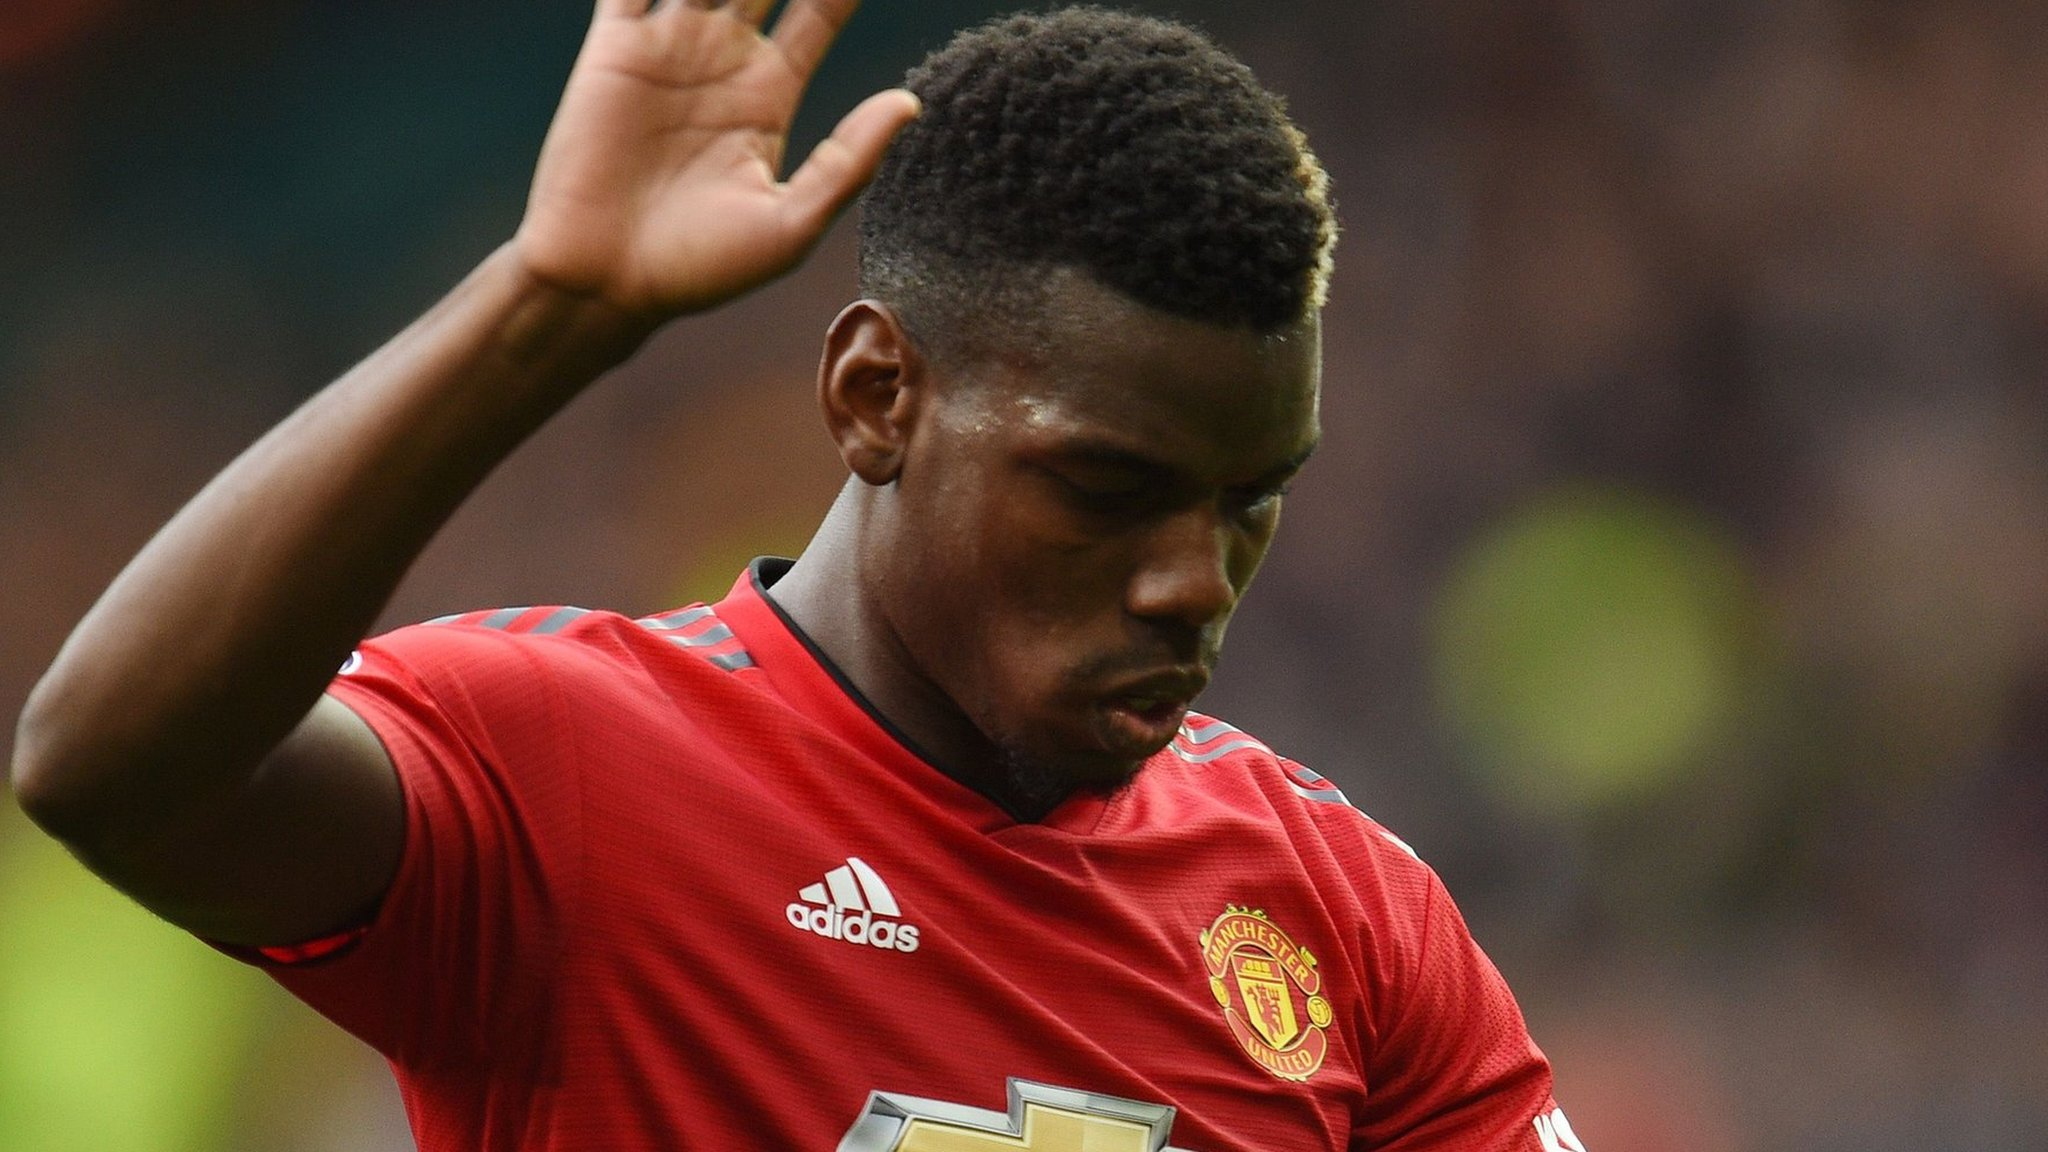 Paul Pogba: Man Utd midfielder misunderstood - France coach Didier Deschamps